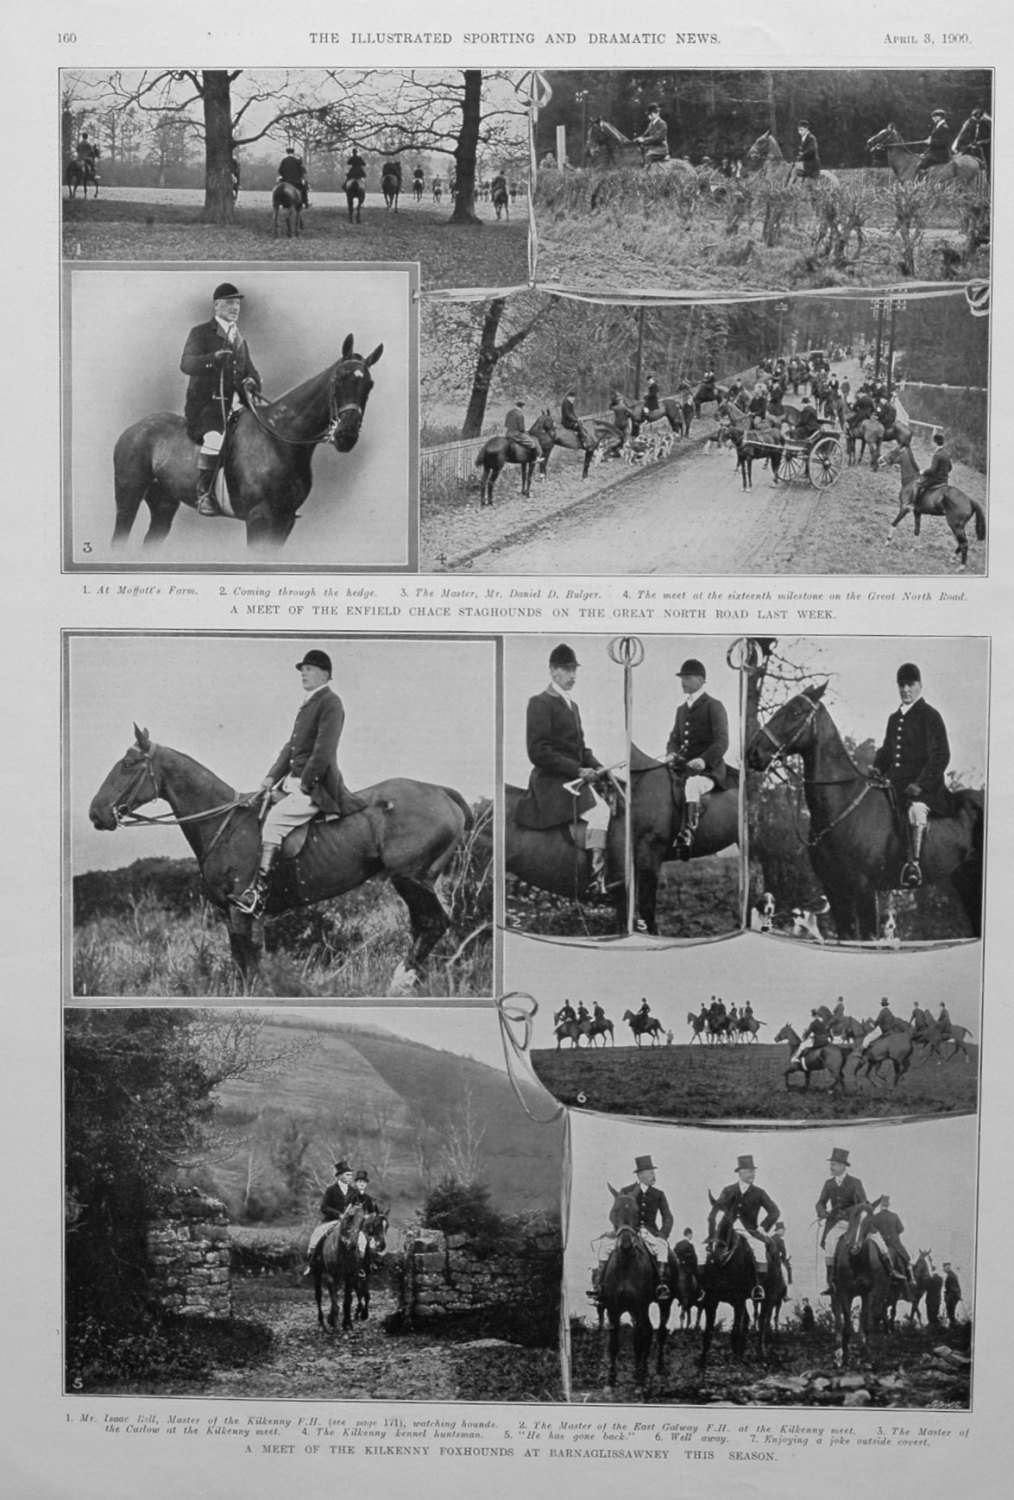 A Meet of the Kilkenny Foxhounds at Barnaglissawney this Season.